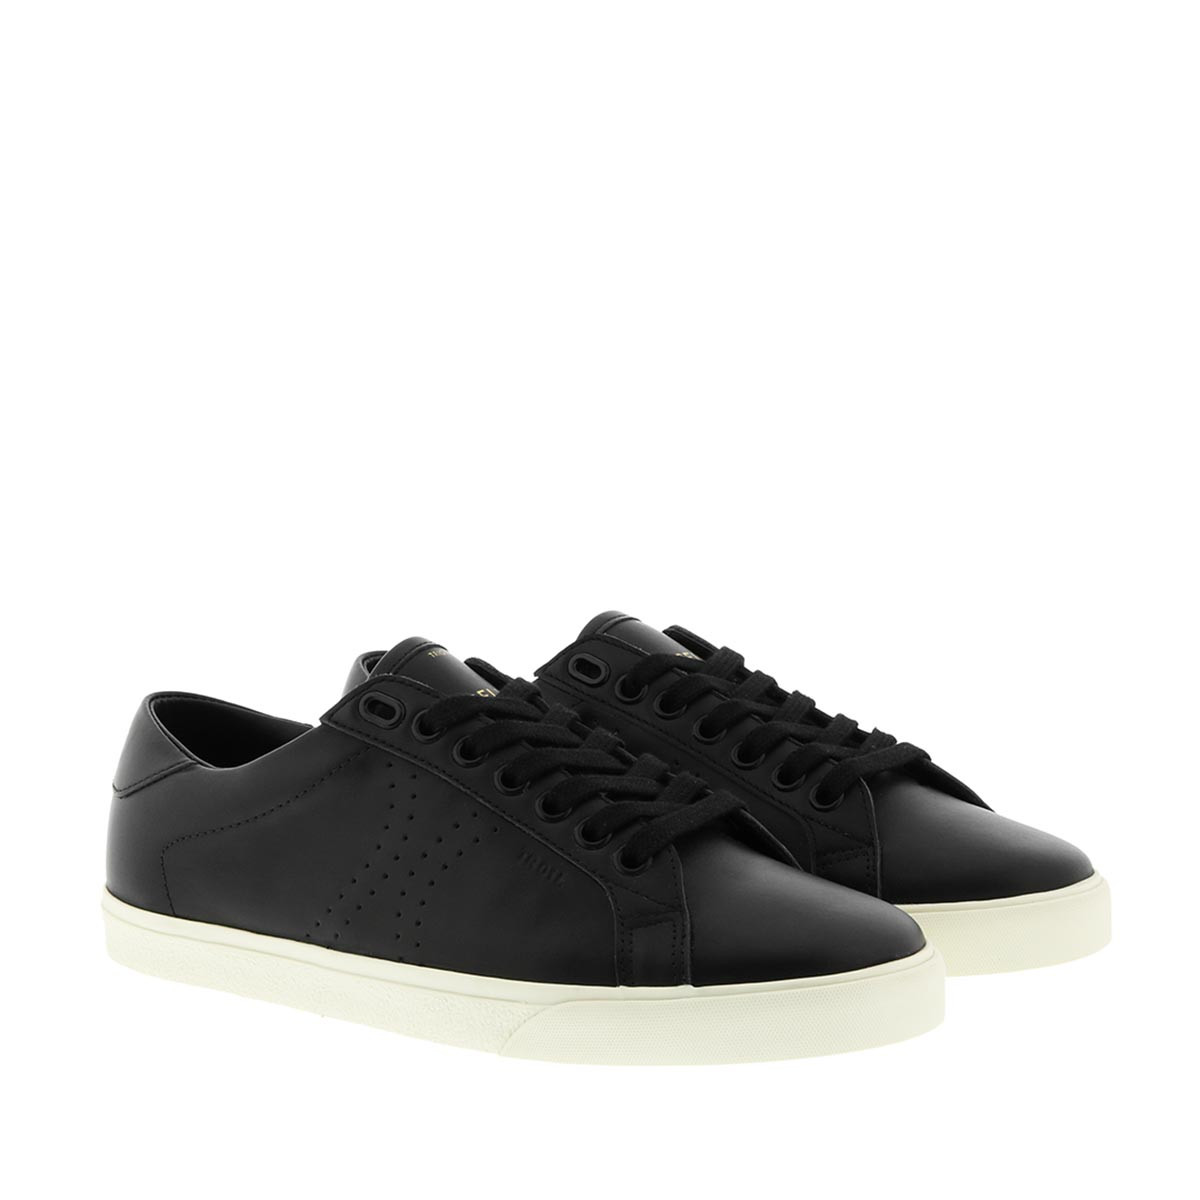 Celine Sneakers - Lace-up Sneakers Black - in schwarz - für Damen